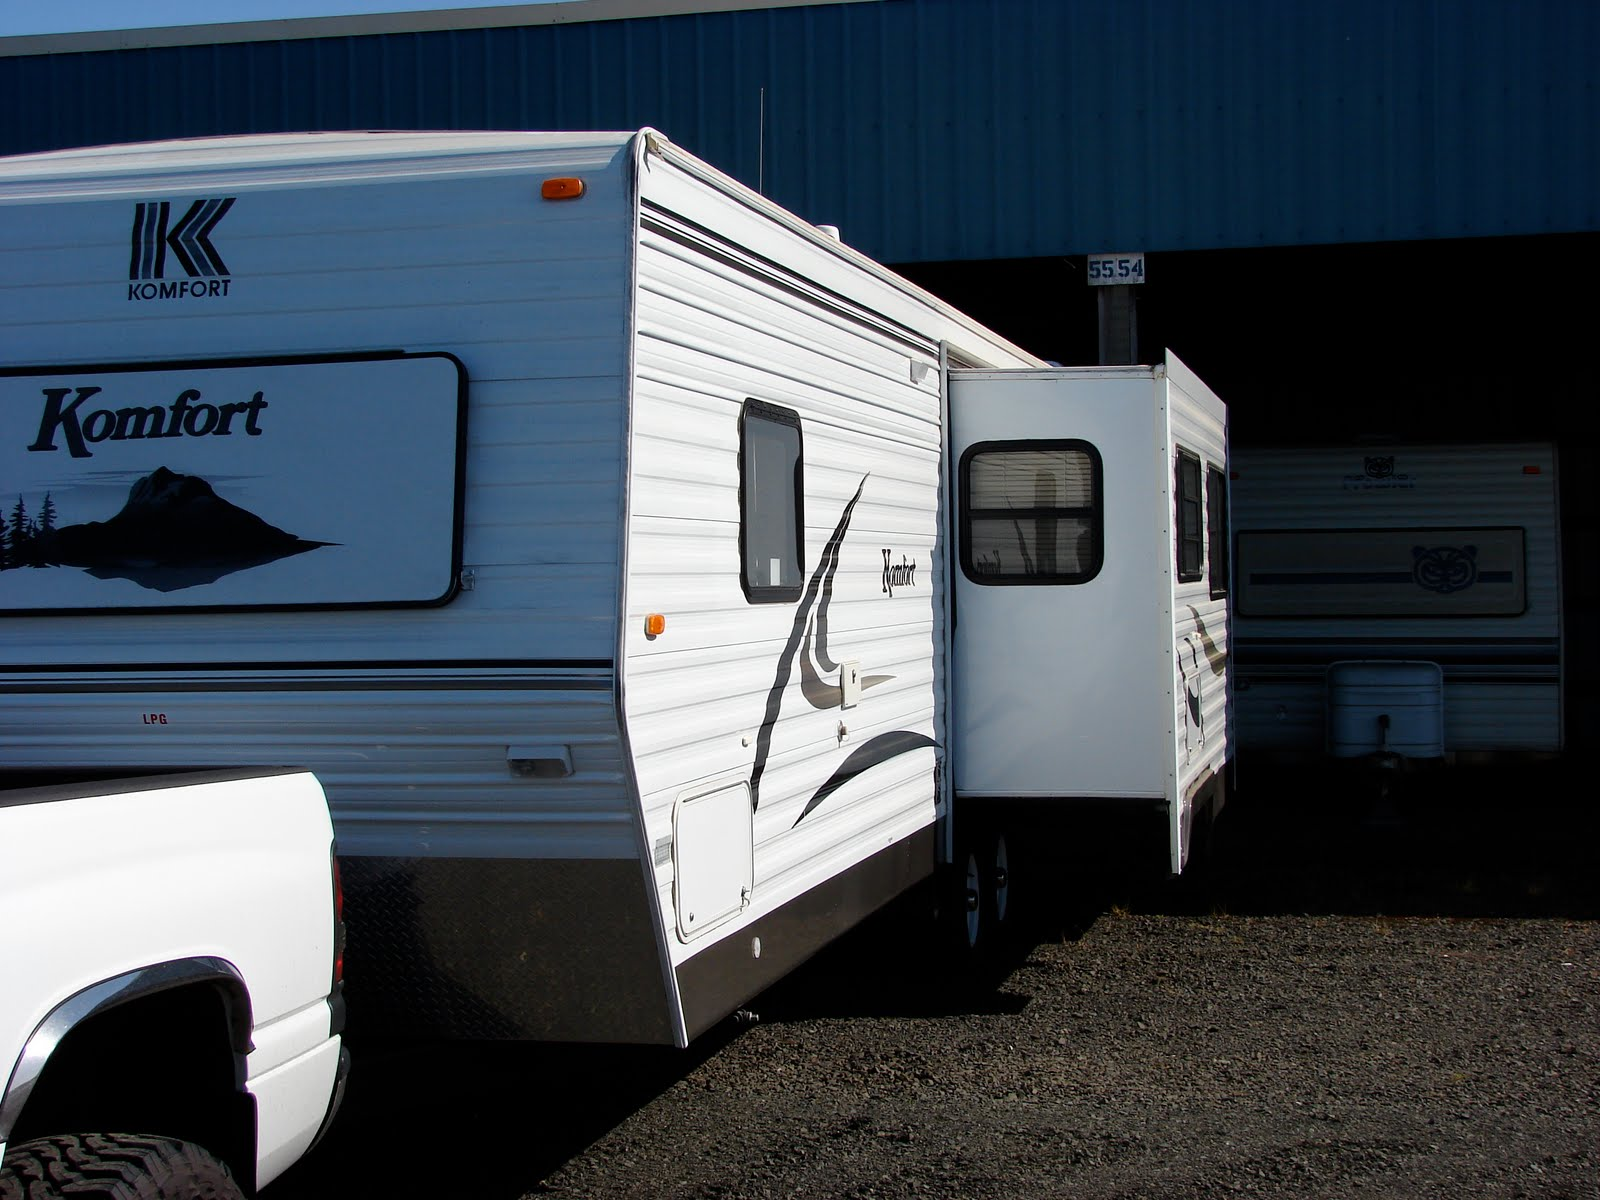 2005 Komfort Travel Trailer 282 Ts Salem Or